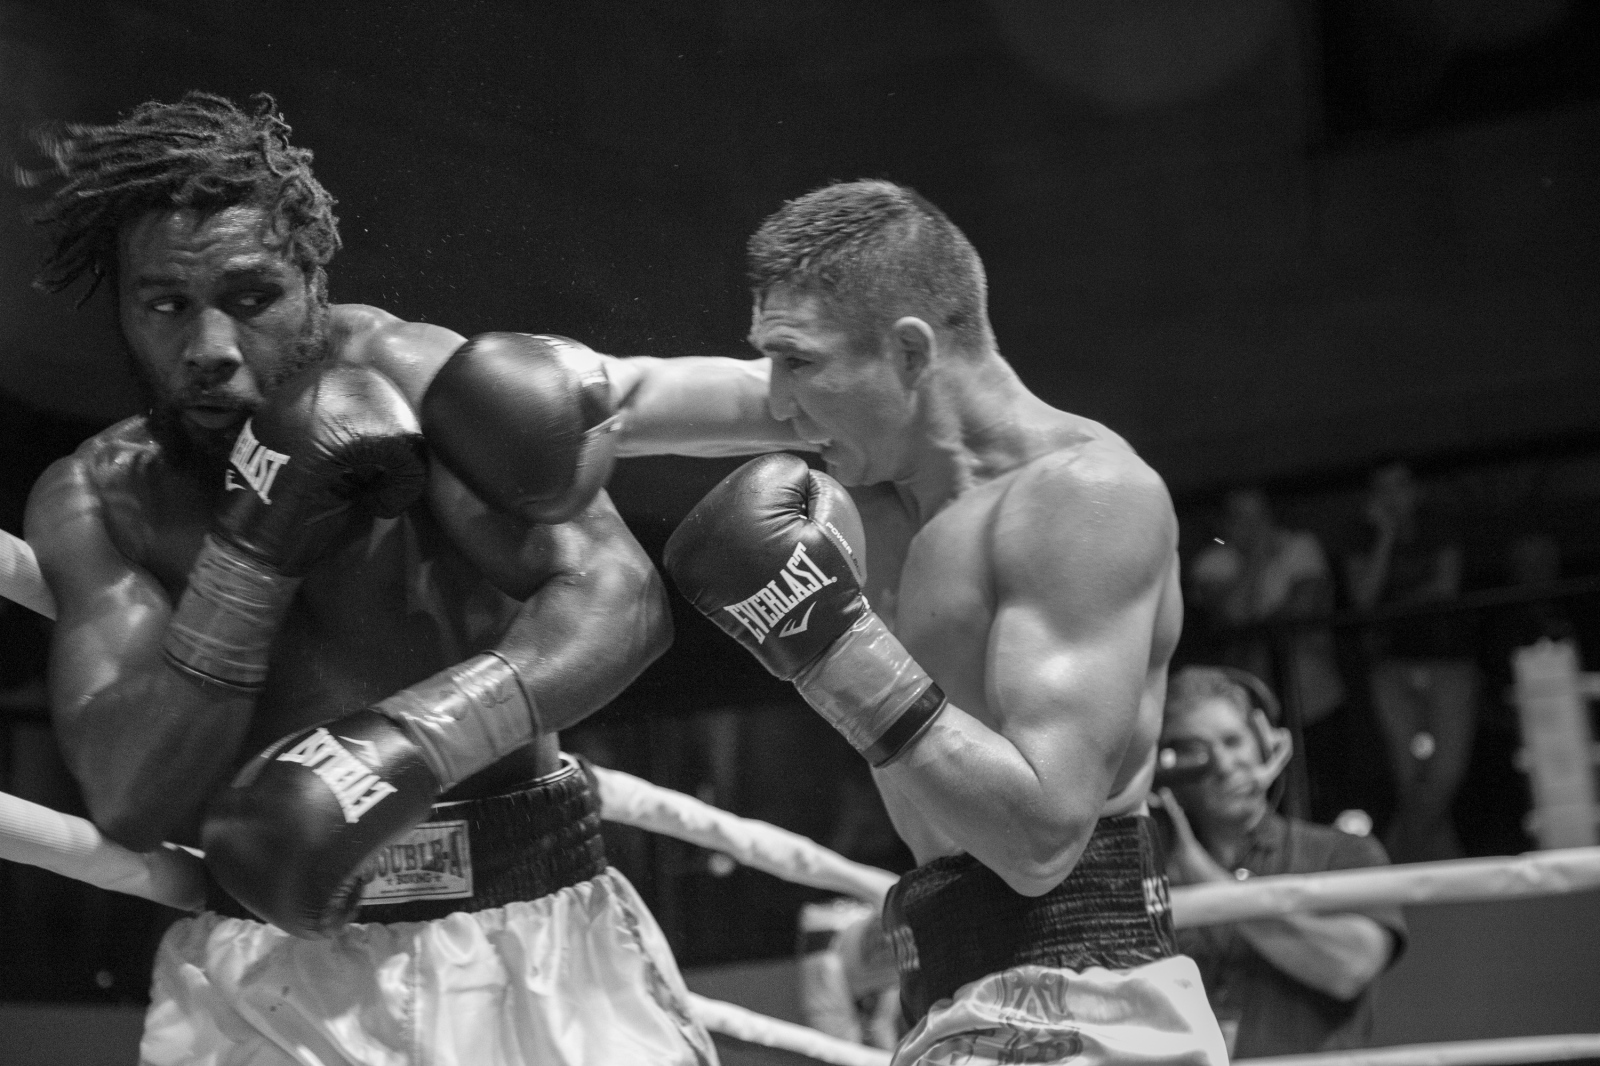 Art and Documentary Photography - Loading boxing-16.jpg